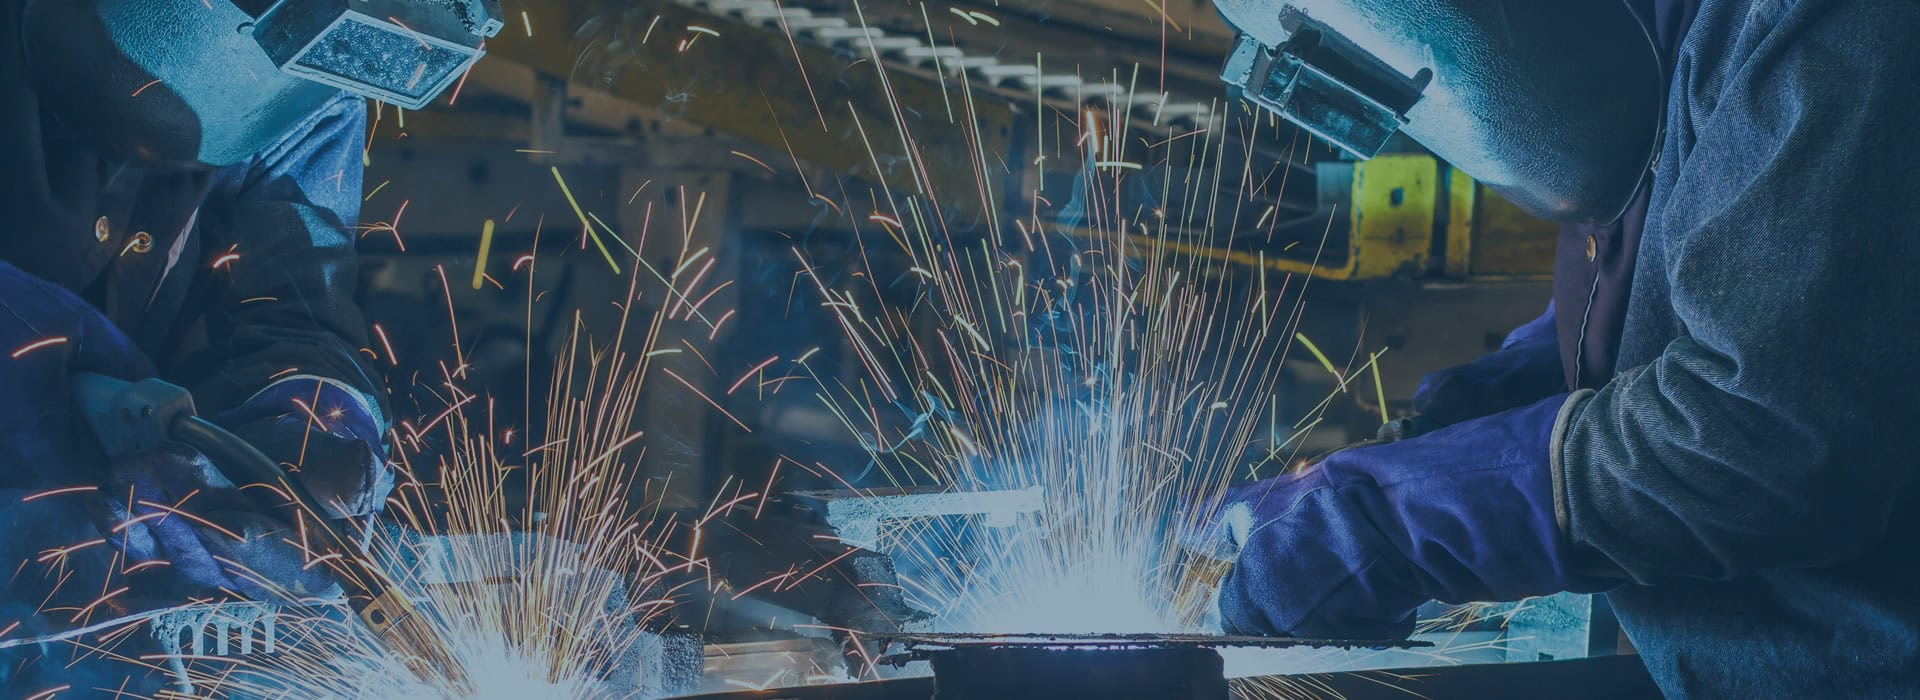 wisconsin manufacturing manufacturing companies in wisconsin in